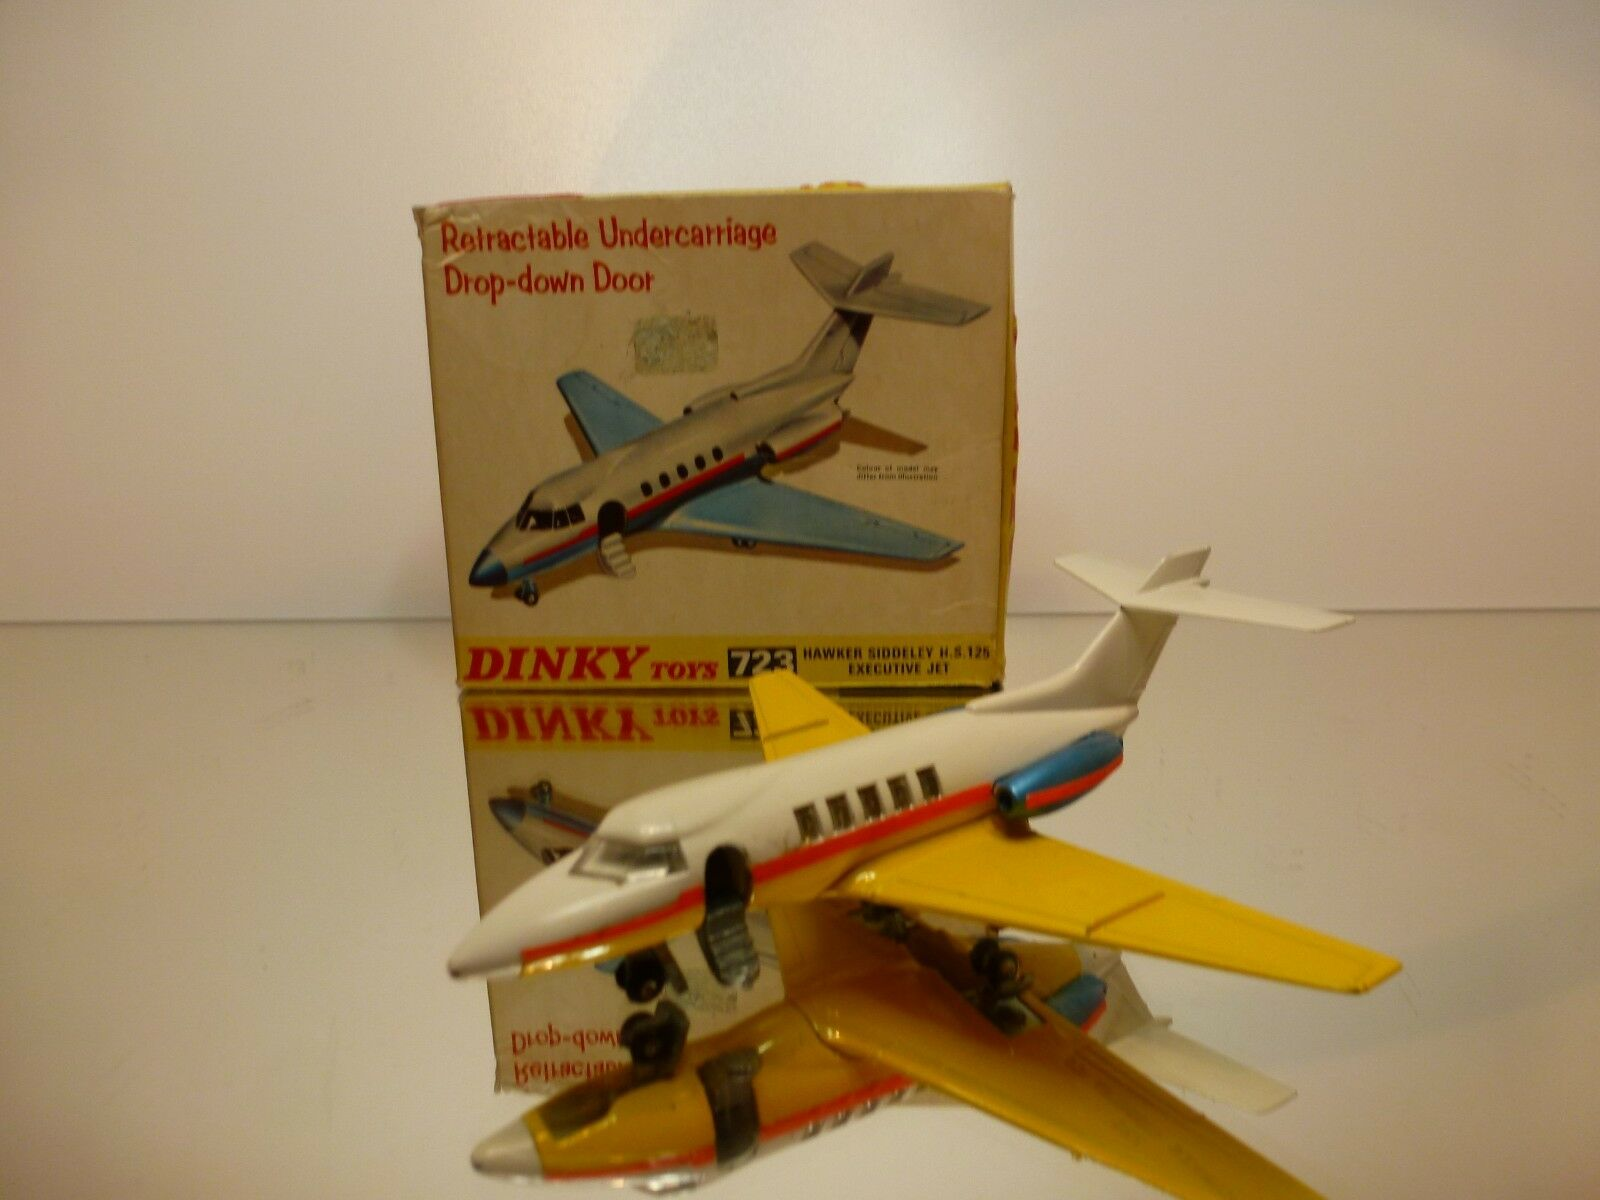 DINKY TOYS 723 HAWKER SIDDELEY H.S.125 - WHITE - VERY GOOD CONDITION IN BOX